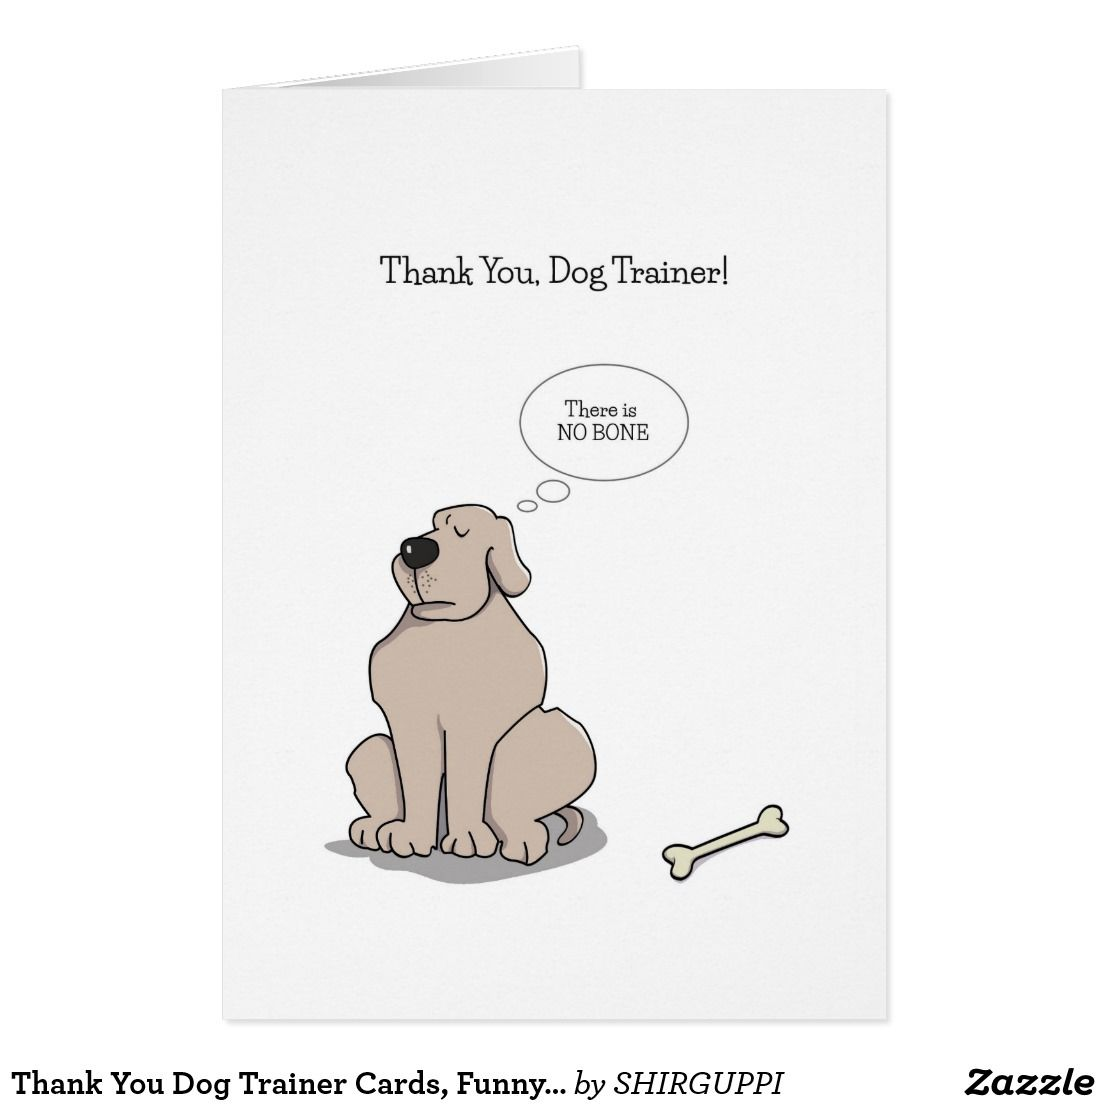 Thank You Dog Trainer Cards Funny Dog Cartoon Zazzle Com With